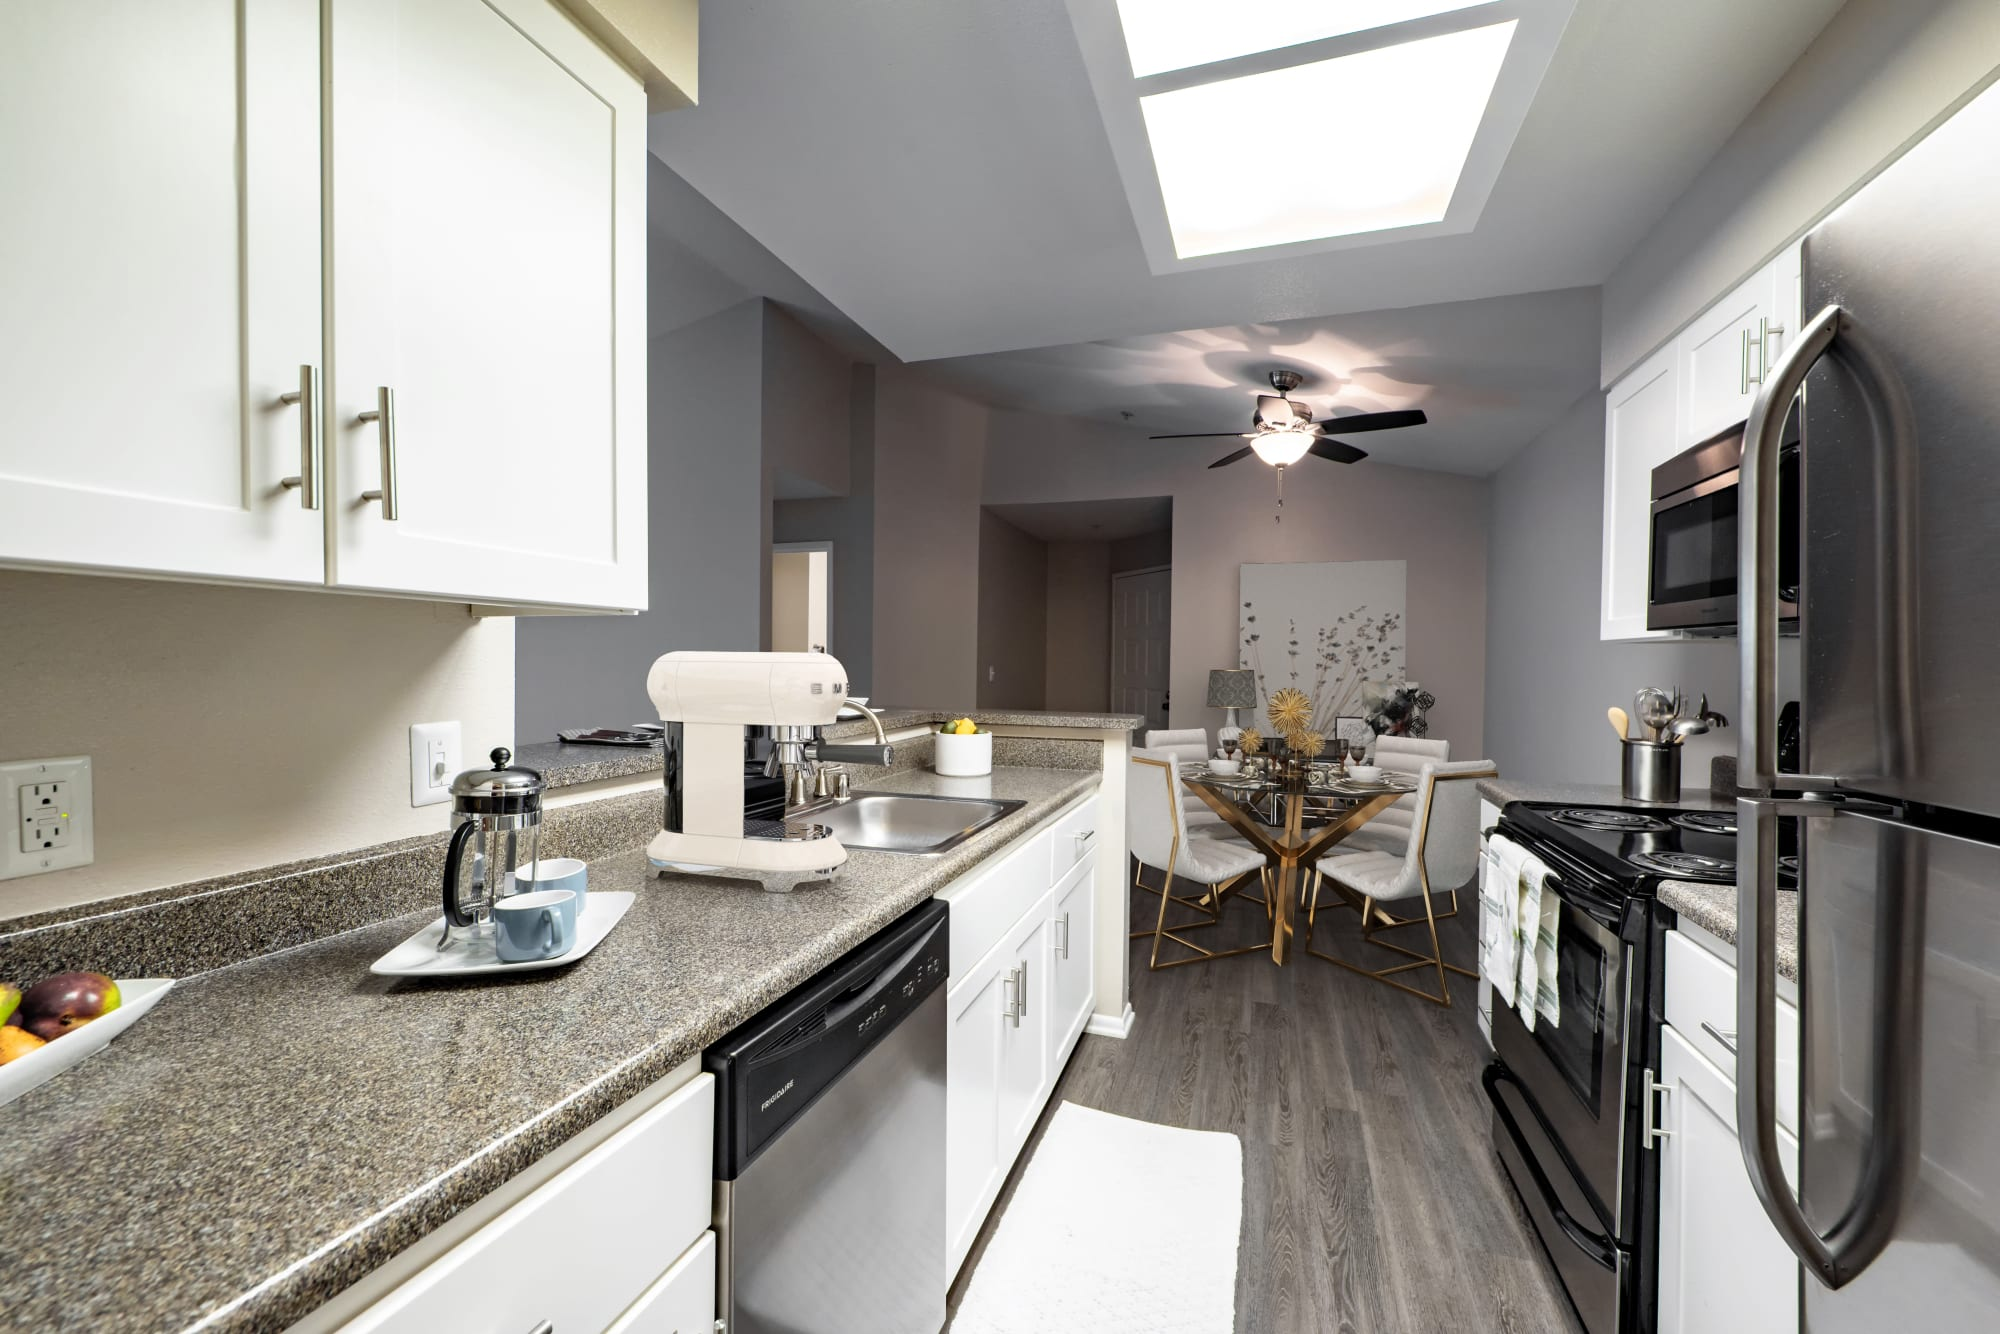 White renovated model kitchen with stainless steel appliances at Sierra Del Oro Apartments in Corona, California